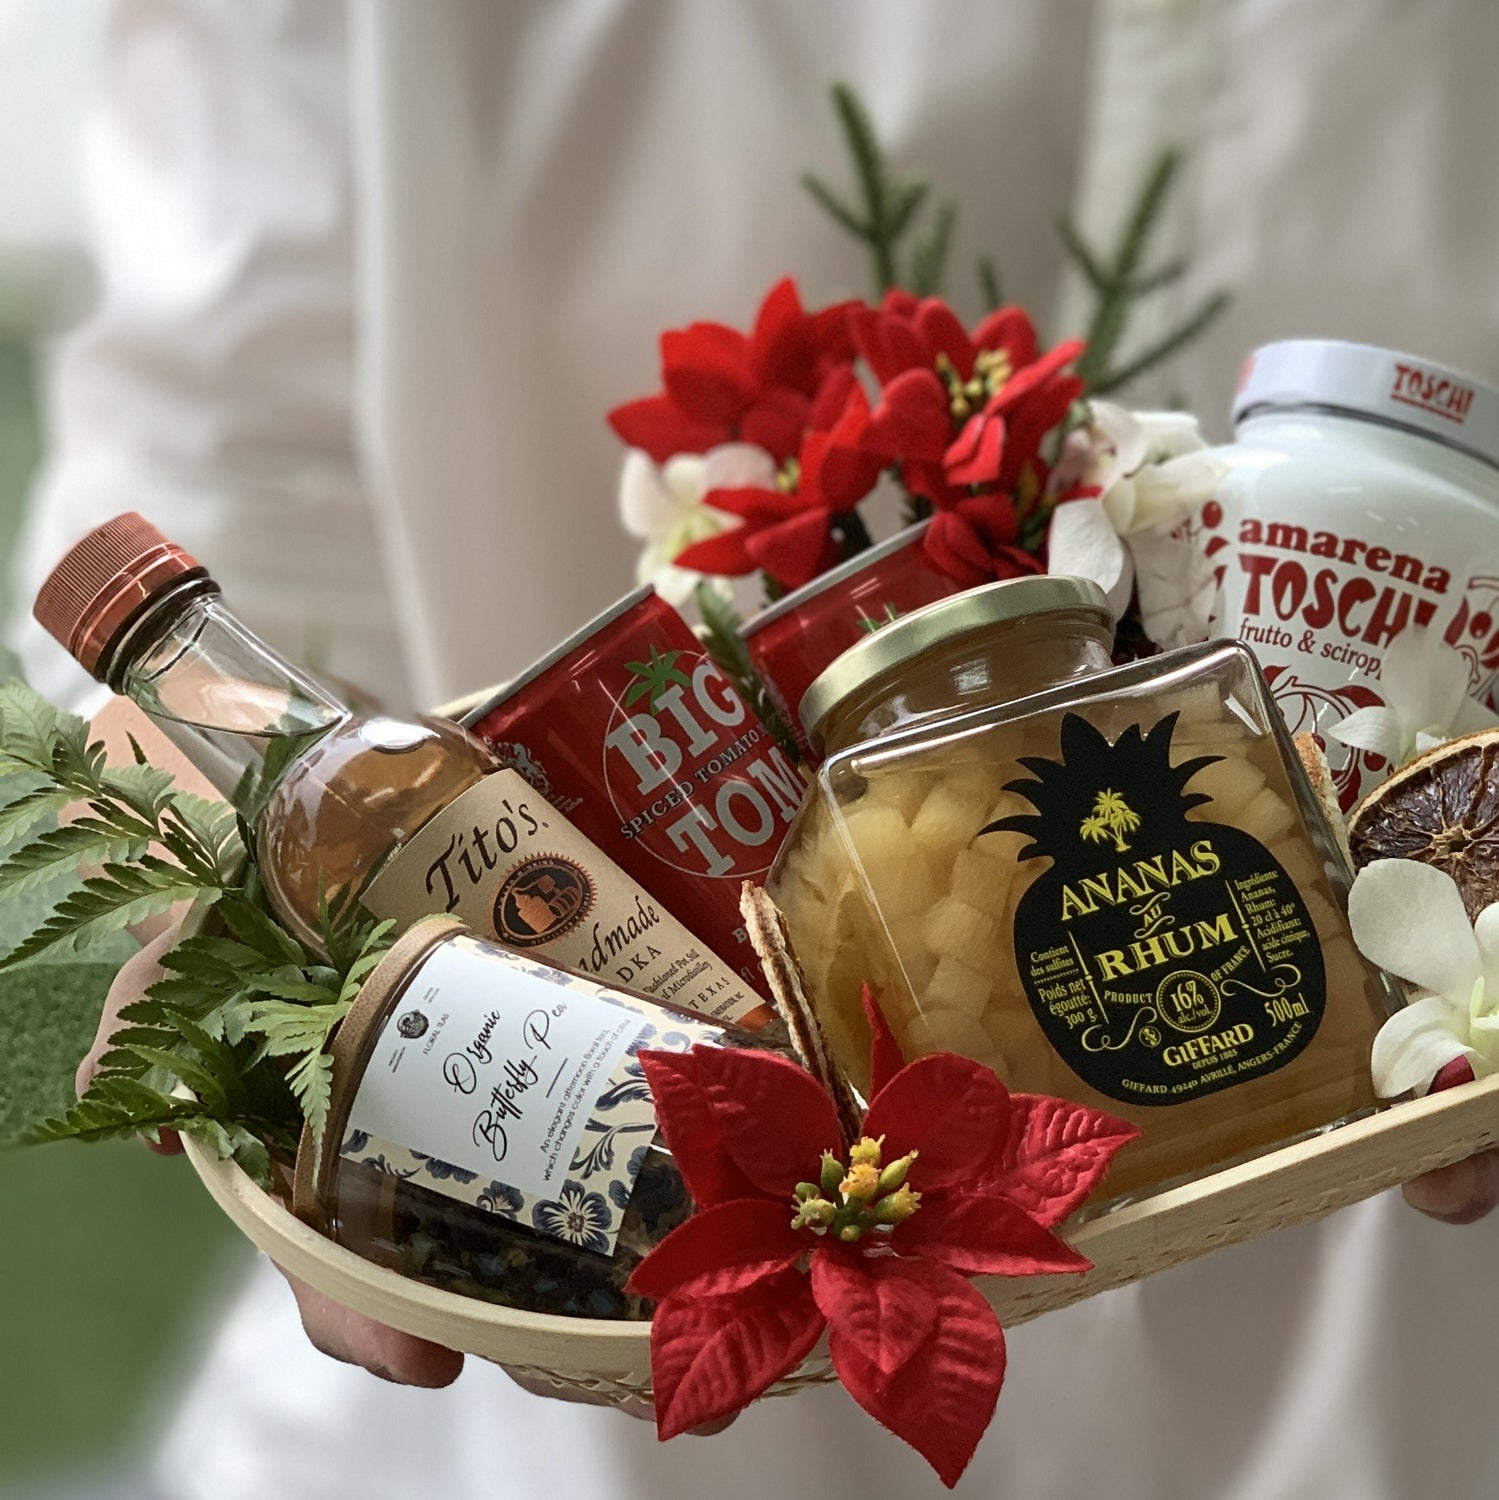 The Vodka Mixologist Holiday Hamper